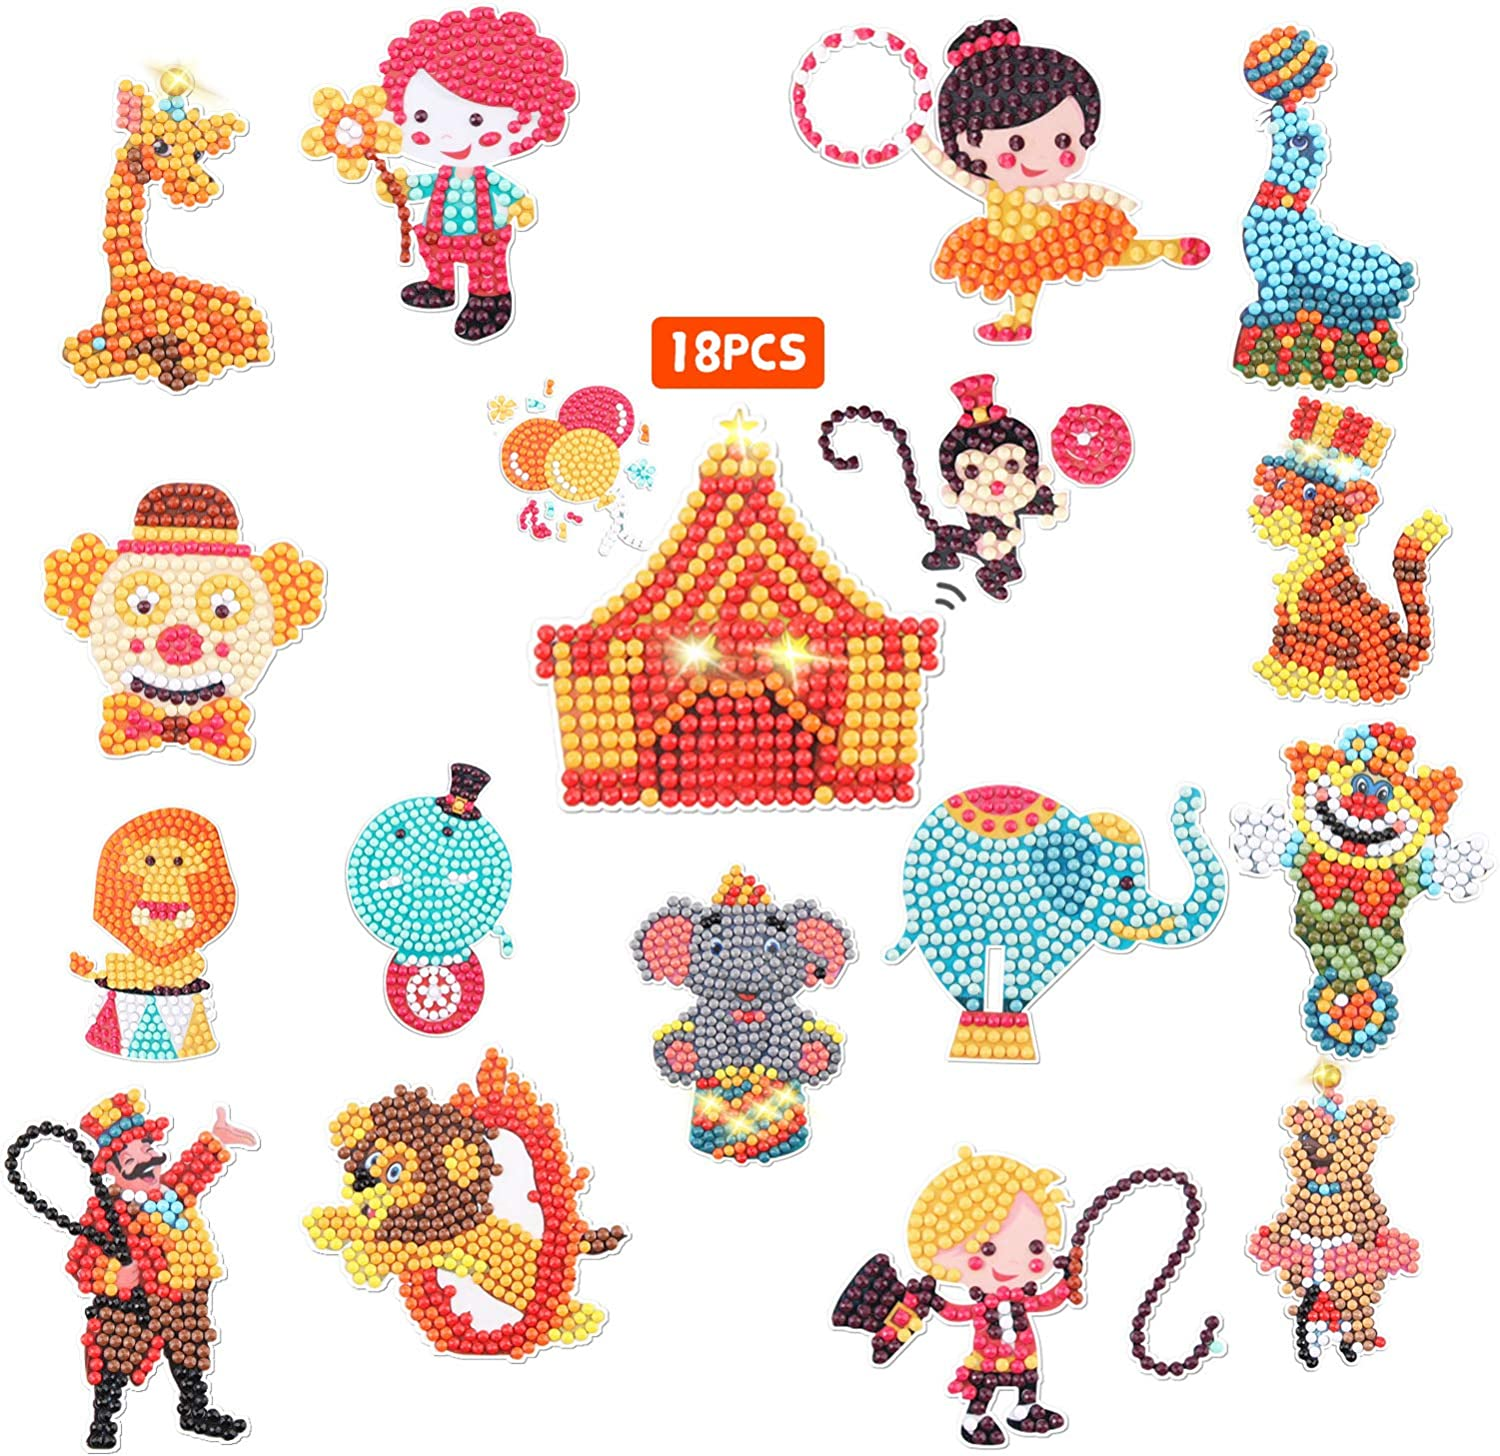 EGV Diamond Painting Sticker Kits for Kids, Circus Animal Diamond Art Mosaic Stickers by Numbers Kits Craft - Easy to DIY, 5D Diamond Dotz Stickers for Boys and Girls - 18 Pieces